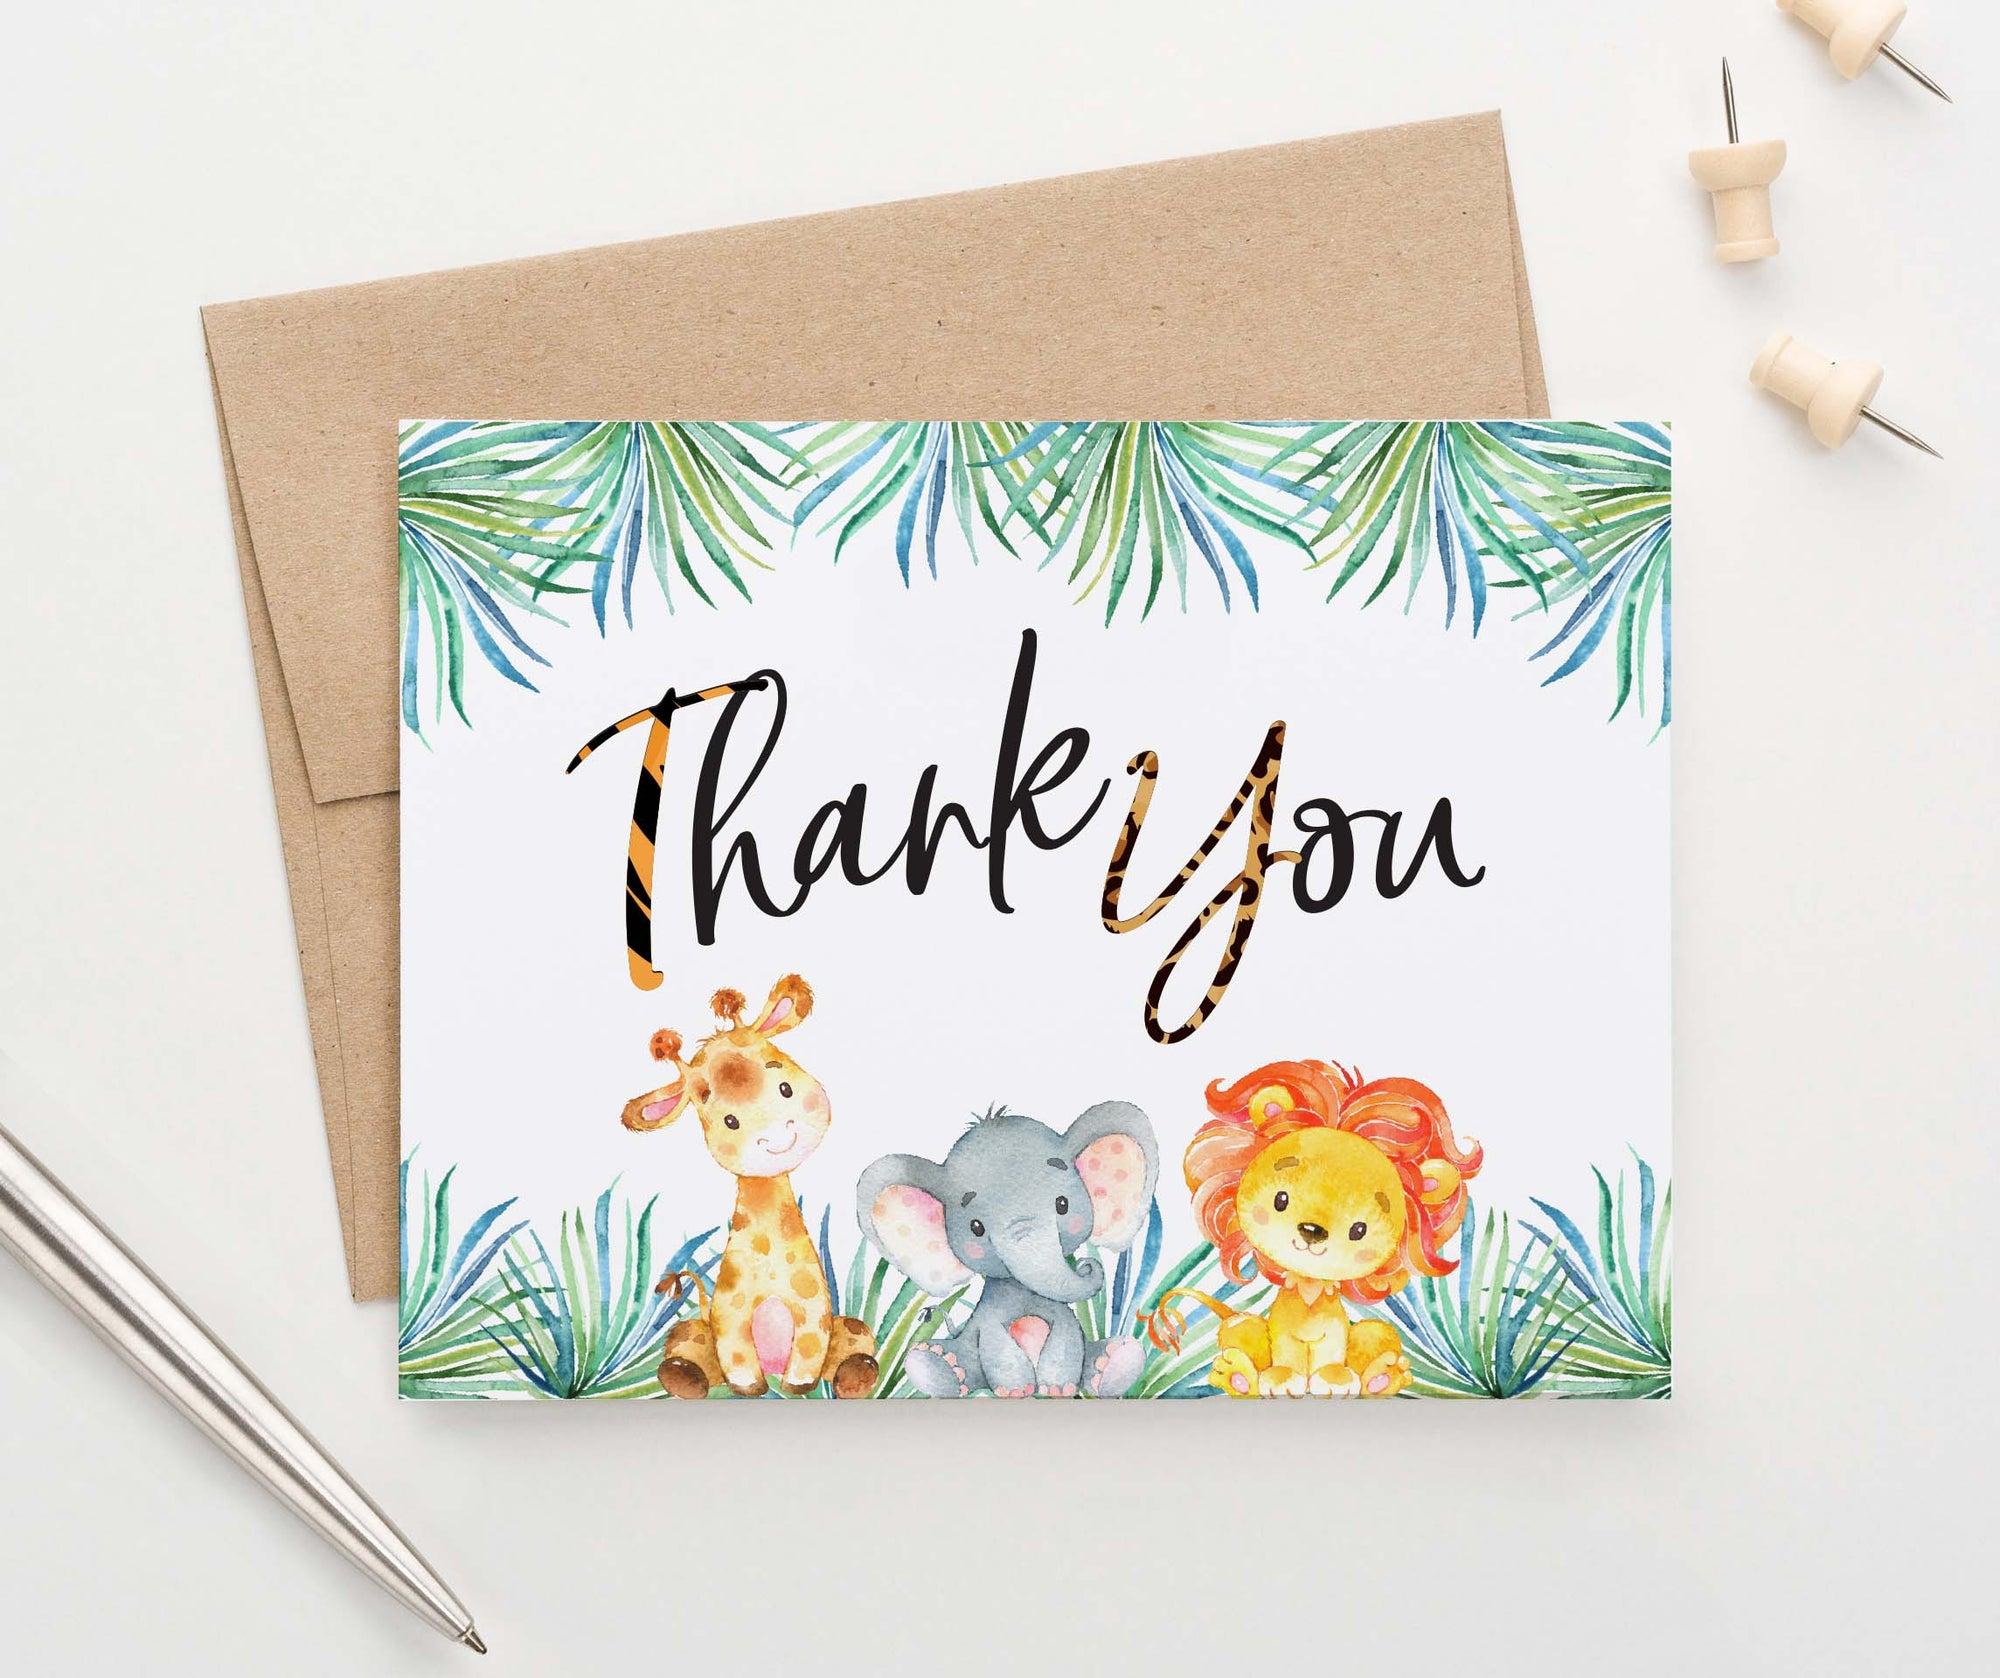 TY064 safari animals folded thank you notes for baby shower kids lion giraffe elephant zoo